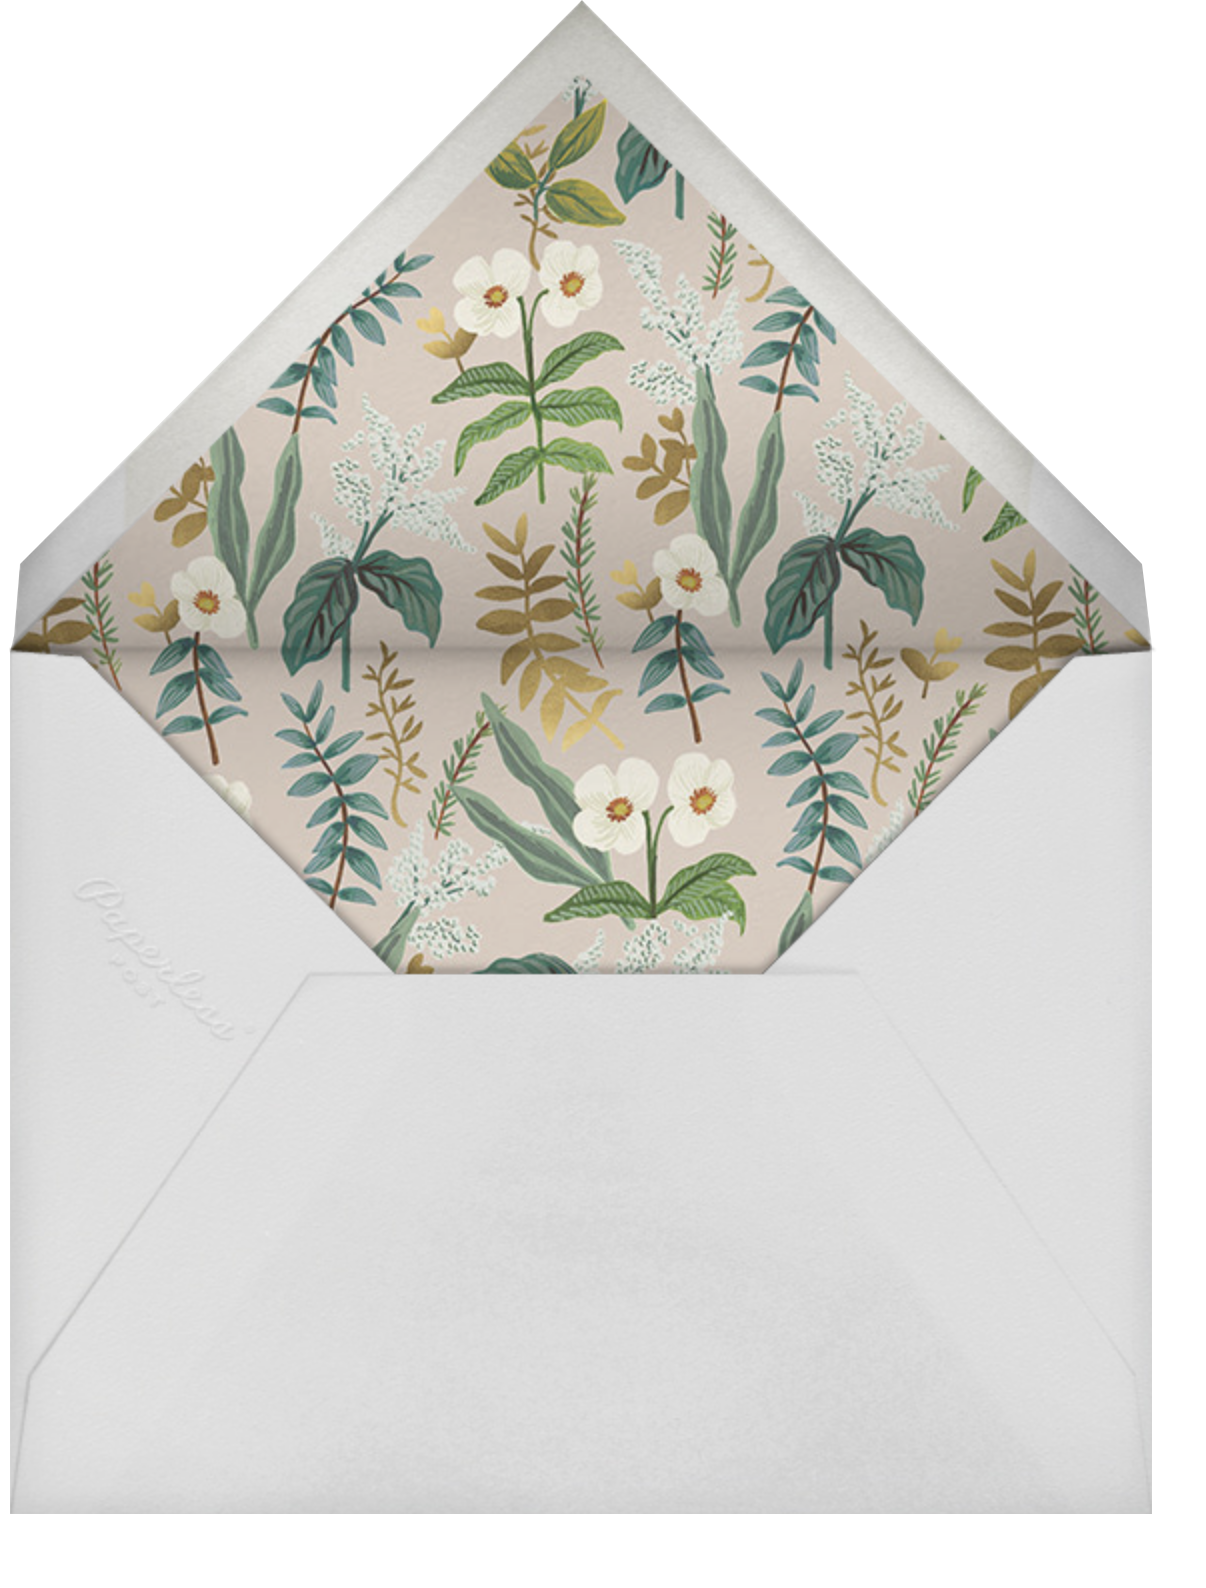 Meadow Garland Photo - Rifle Paper Co. - Kids' birthday - envelope back